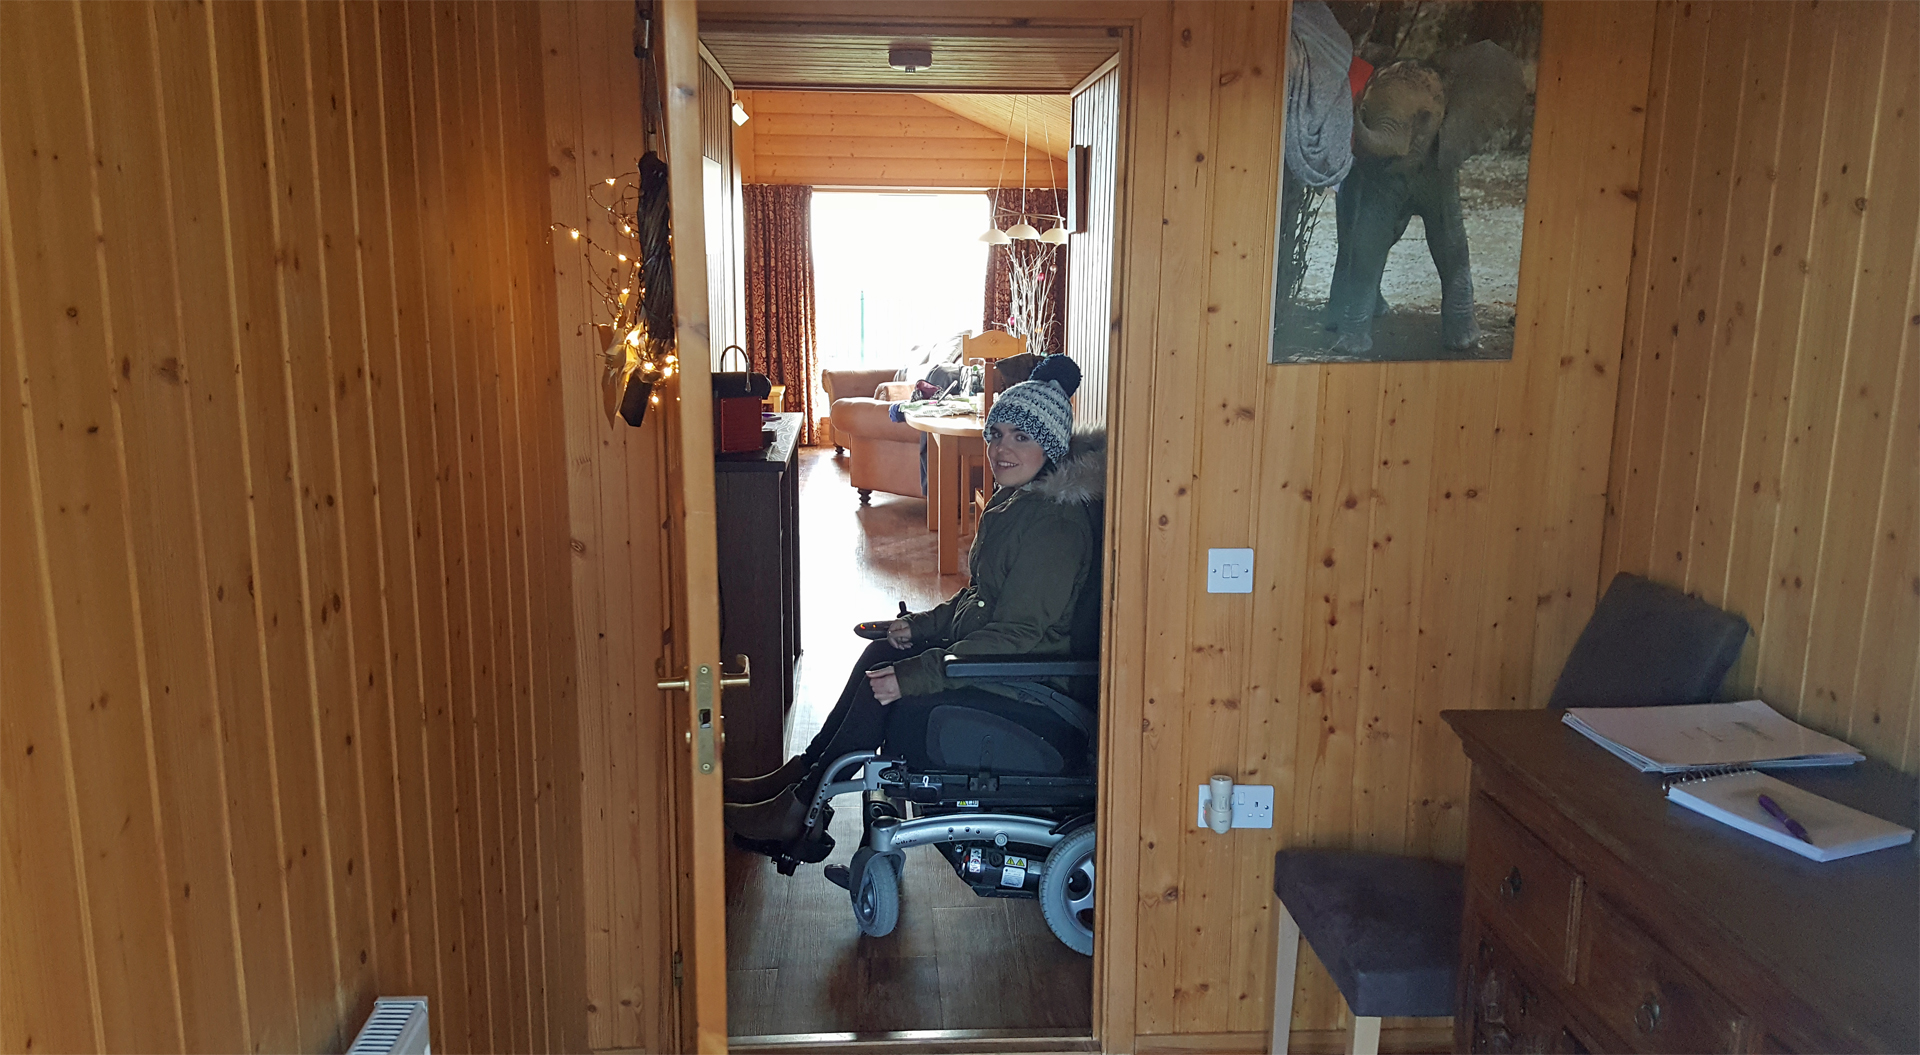 Wheelchair user in the hallway of The Ramsay lodge at Airhouses Luxury Self Catering Lodges in Scottish Borders